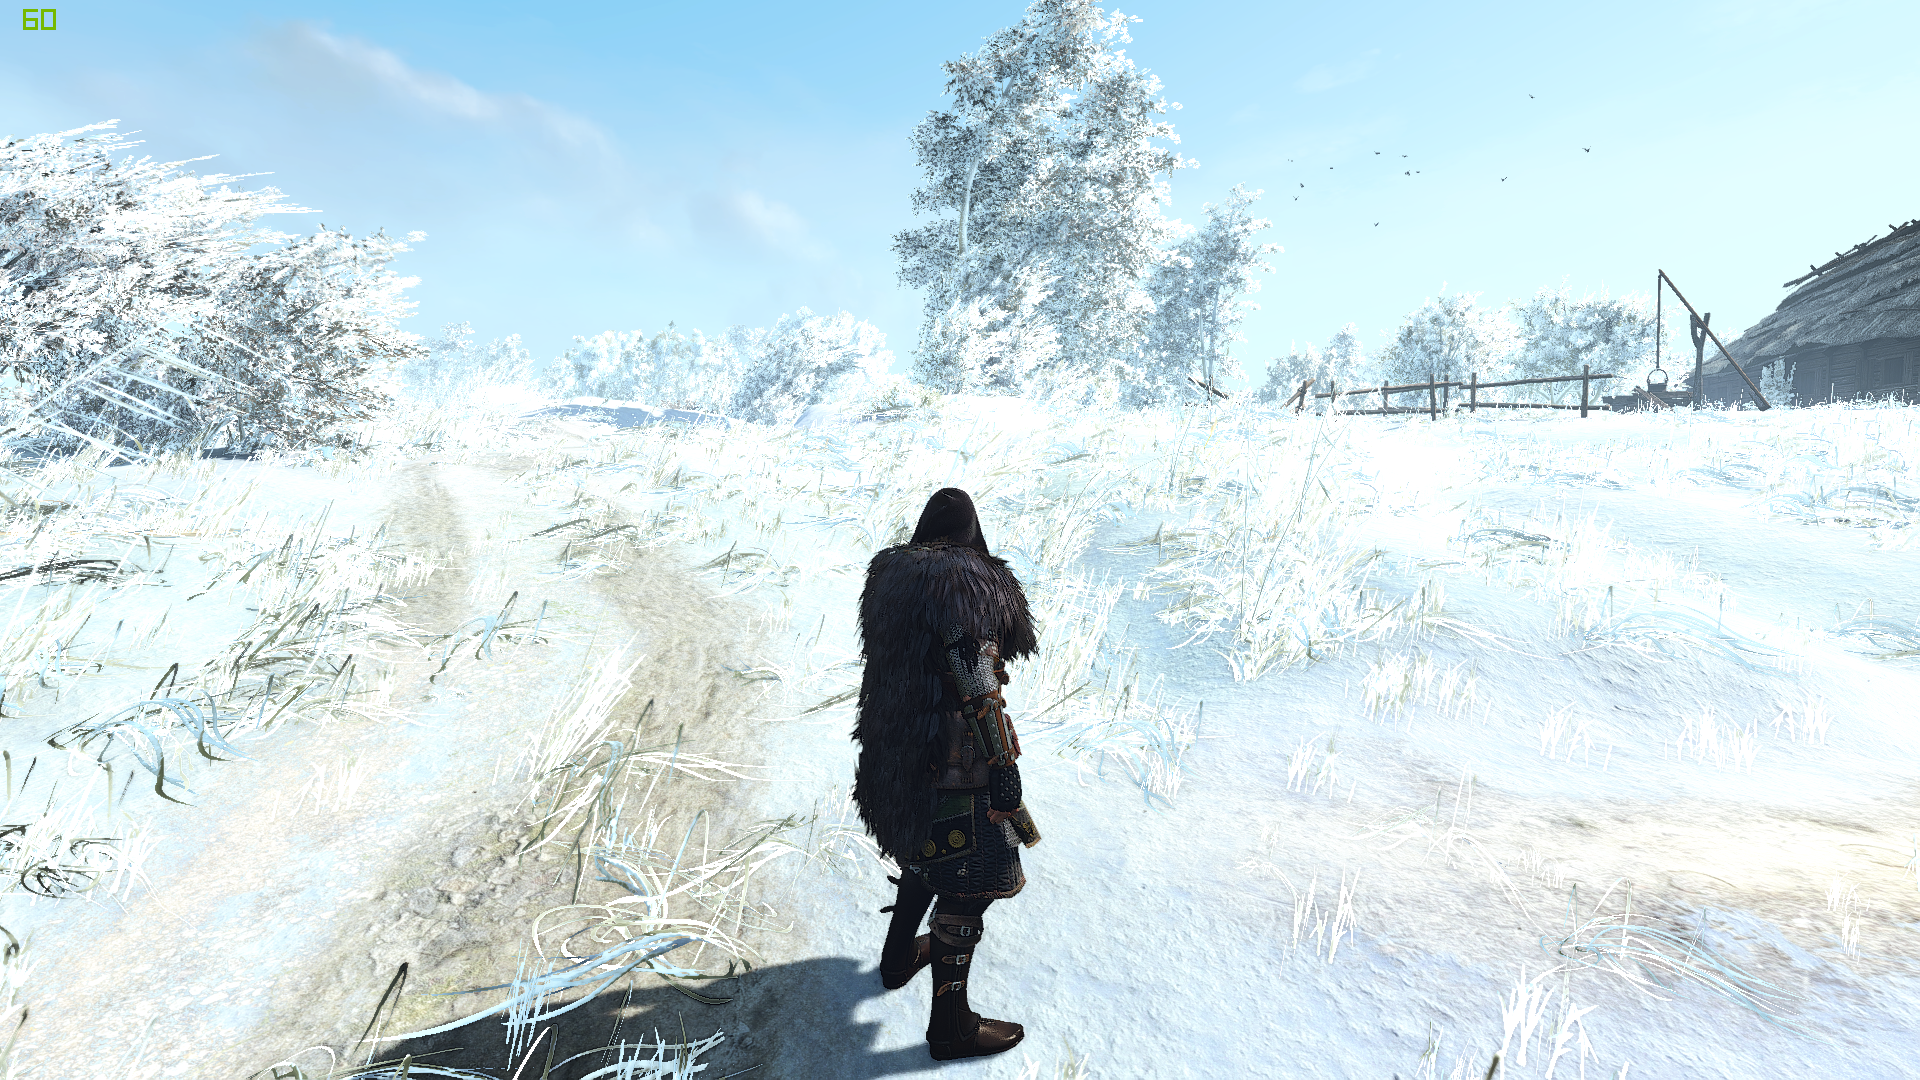 """Winter is coming / Мод """"Зима"""" для The Witcher 3: Wild Hunt - Скриншот 2"""